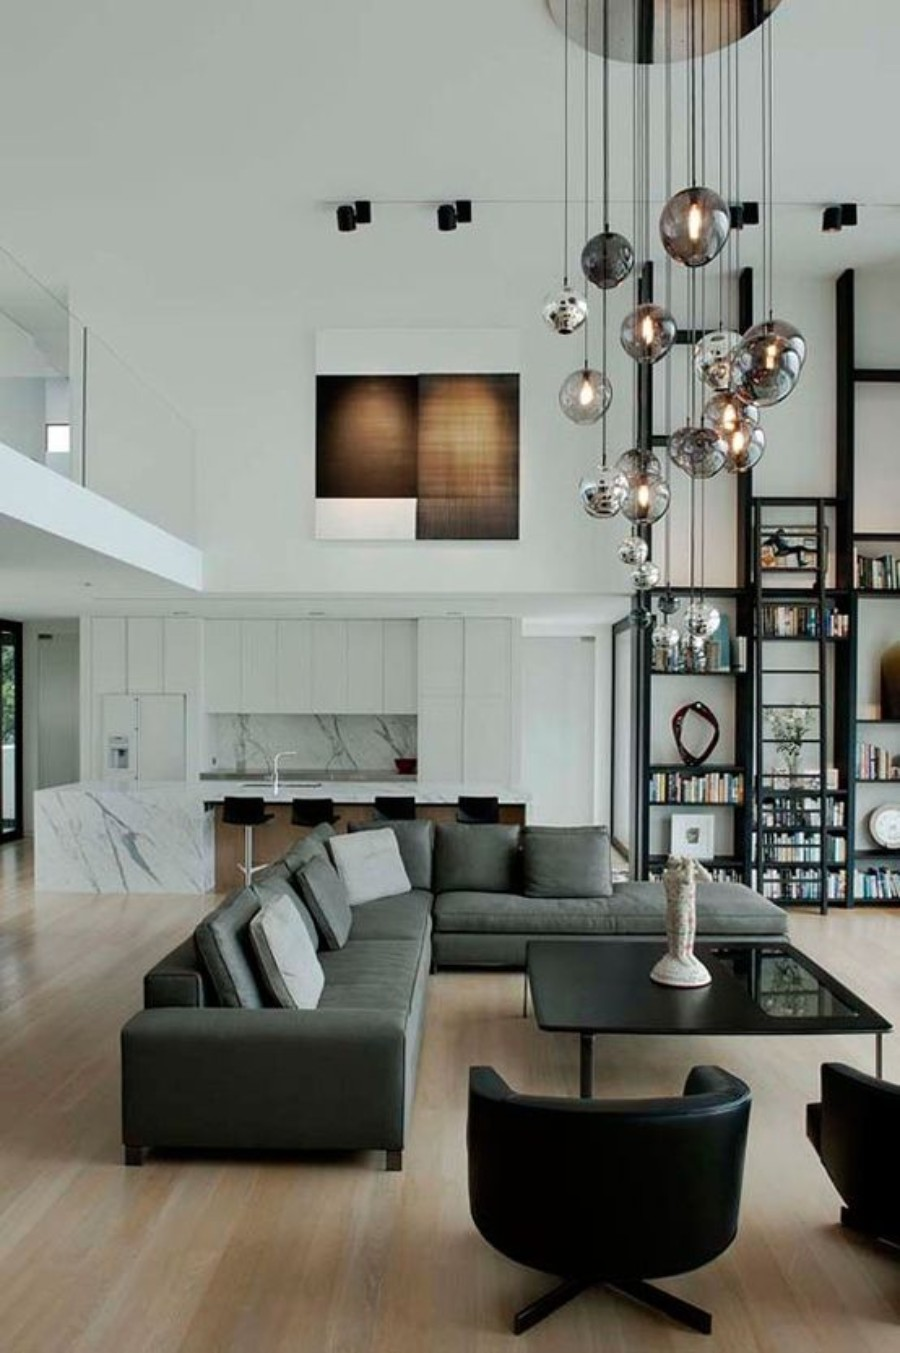 top 10 lighting ideas for your living room lighting ideas Top 10 Lighting Ideas to Your Living Room 1f66293beb2baa9f2323bb1603194685